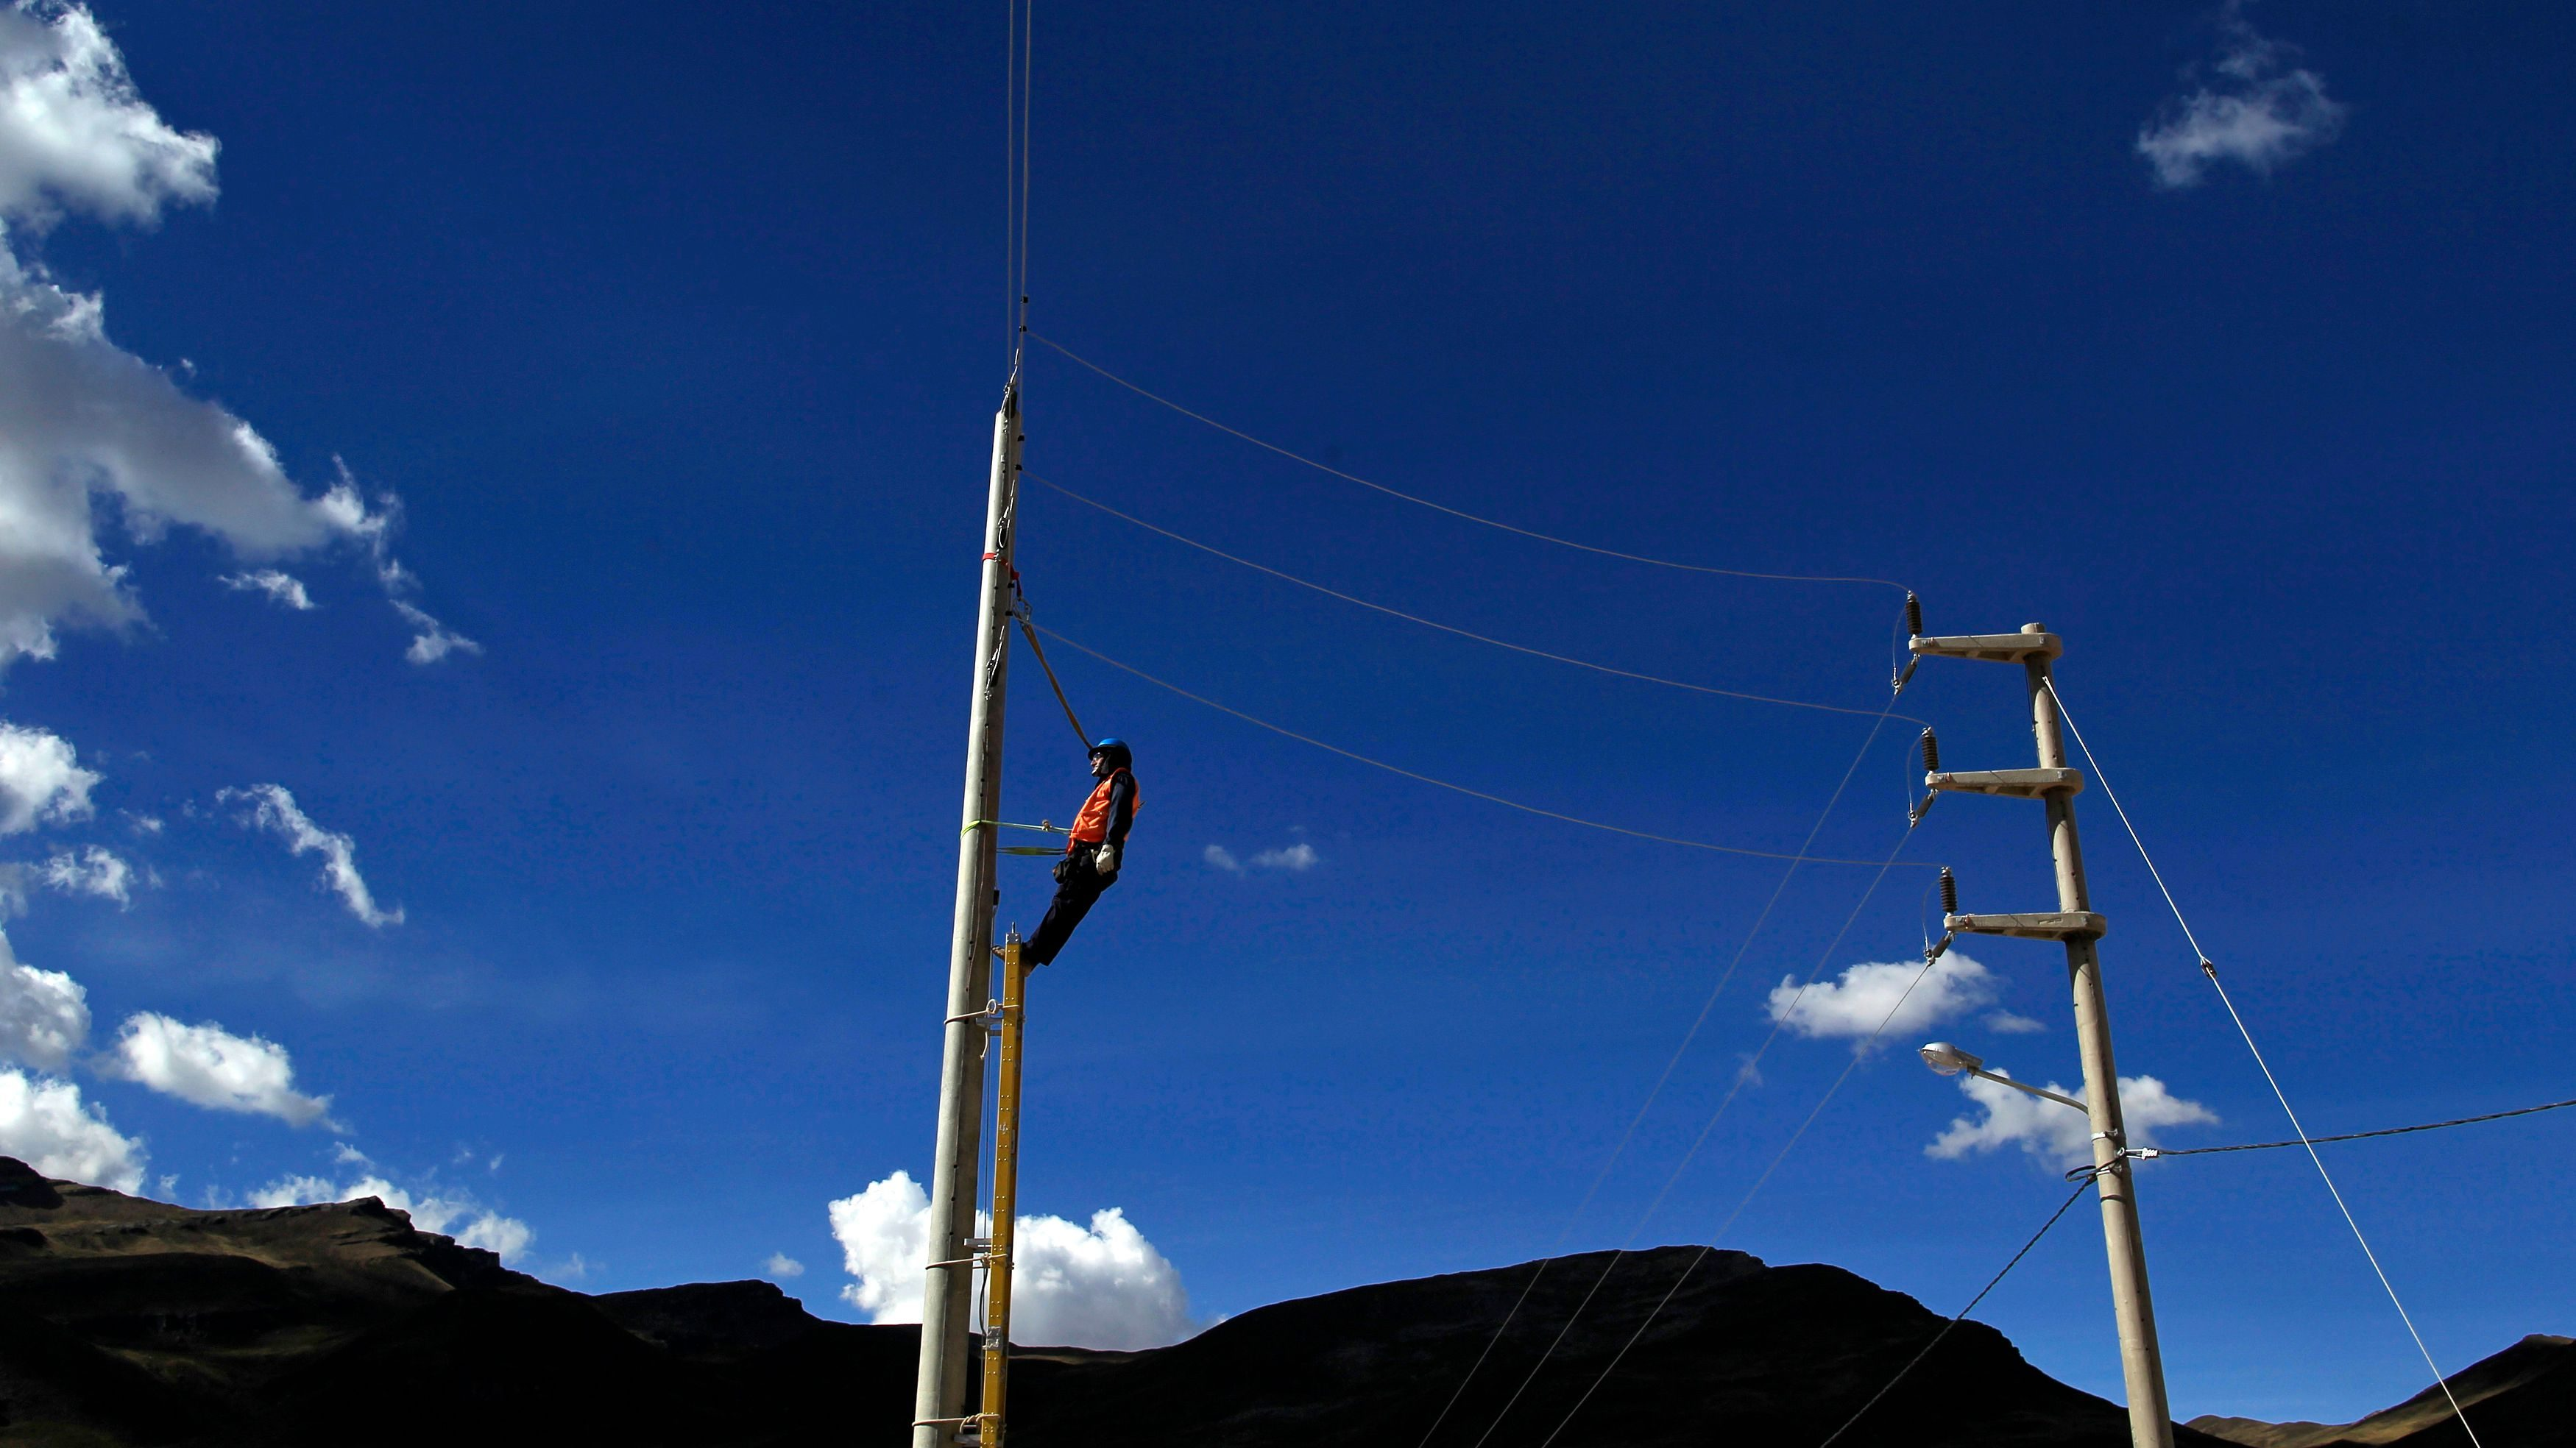 """A worker inspects an electrical pole in the new town named """"New Morococha,"""" in the andean city of Junin, June 18, 2012. High in the Andes mountain range, a Chinese mining company is now in the housing construction and demolition business as it works to relocate a Peruvian town that sits in the way of its $2.2 billion Toromocho copper mine. By late July, state-owned miner Chinalco says it will finish building a new city of paved roads and multi-story homes for 5,000 people currently living on the side of a giant red mountain of copper 15,000 feet (4,500 meters) above sea level. Picture taken June 18, 2012. To match Feature PERU-MINING/CHINALCO REUTERS/Pilar Olivares (PERU - Tags: POLITICS ENVIRONMENT TPX IMAGES OF THE DAY) - GM1E8711U3B01"""